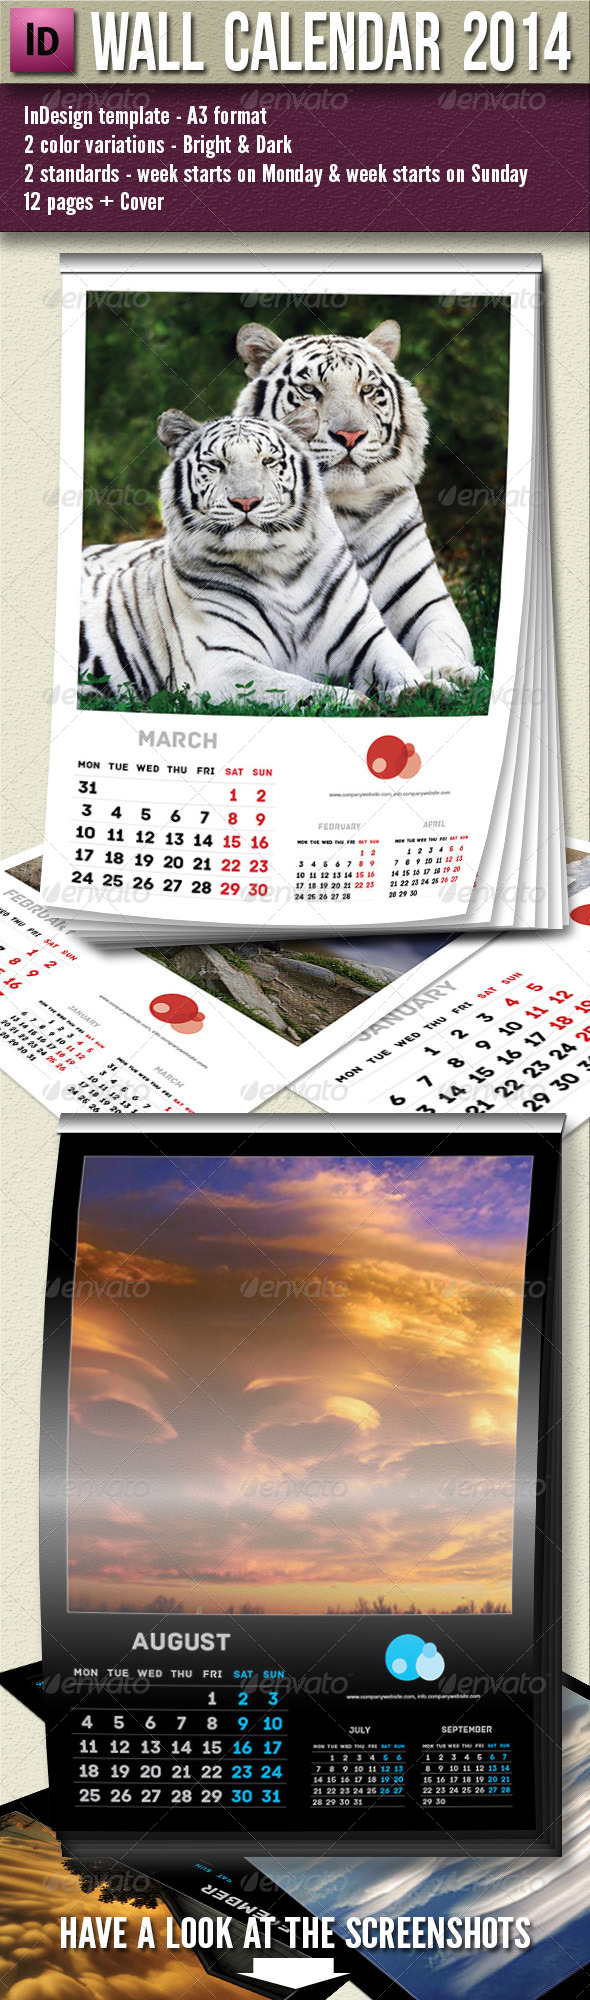 Wall Calendar 2014 - 13 pages A3